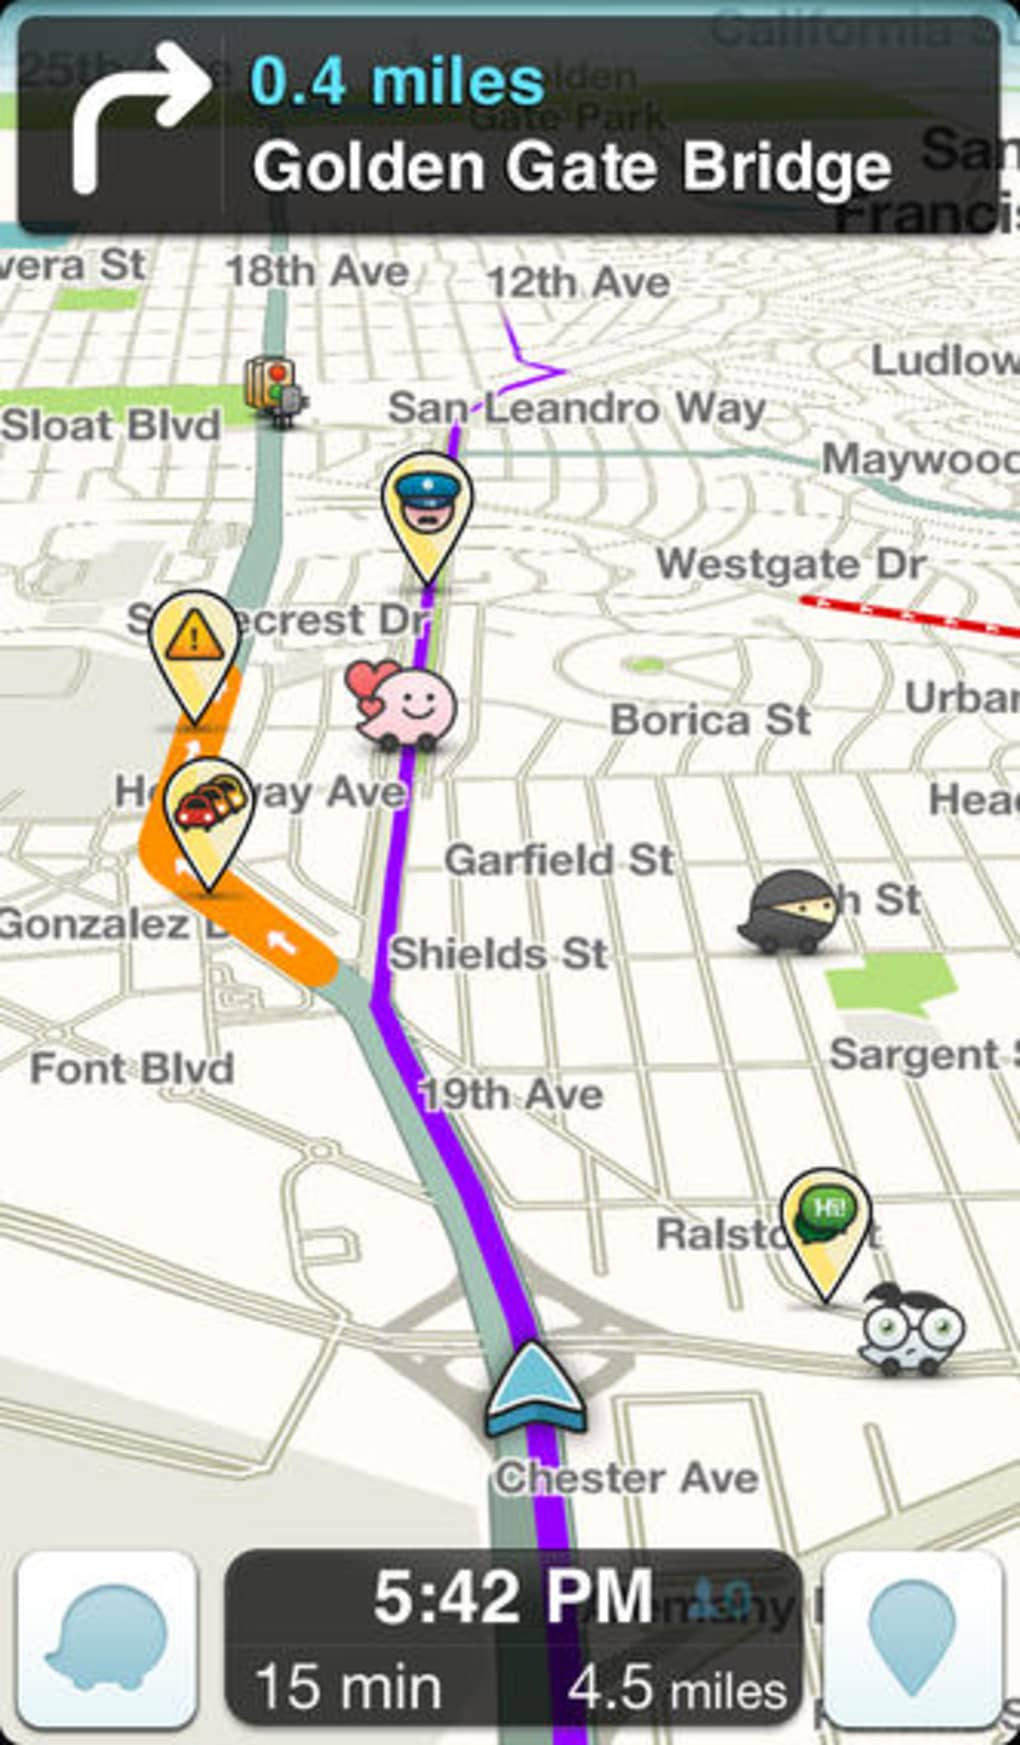 Waze for iPhone - Download Map App Downlod on map of negros philippines, map directions point to point, map of boulder colorado and surrounding area, map of the european alps, map math, map of all the states, map data, map of london 1880, map guide, map london south kensington, map travel, map ark, map google, map millbrook al, map of kensington san diego, map language, map from point to point, map of merrimack valley massachusetts, map of appalachia, map features,